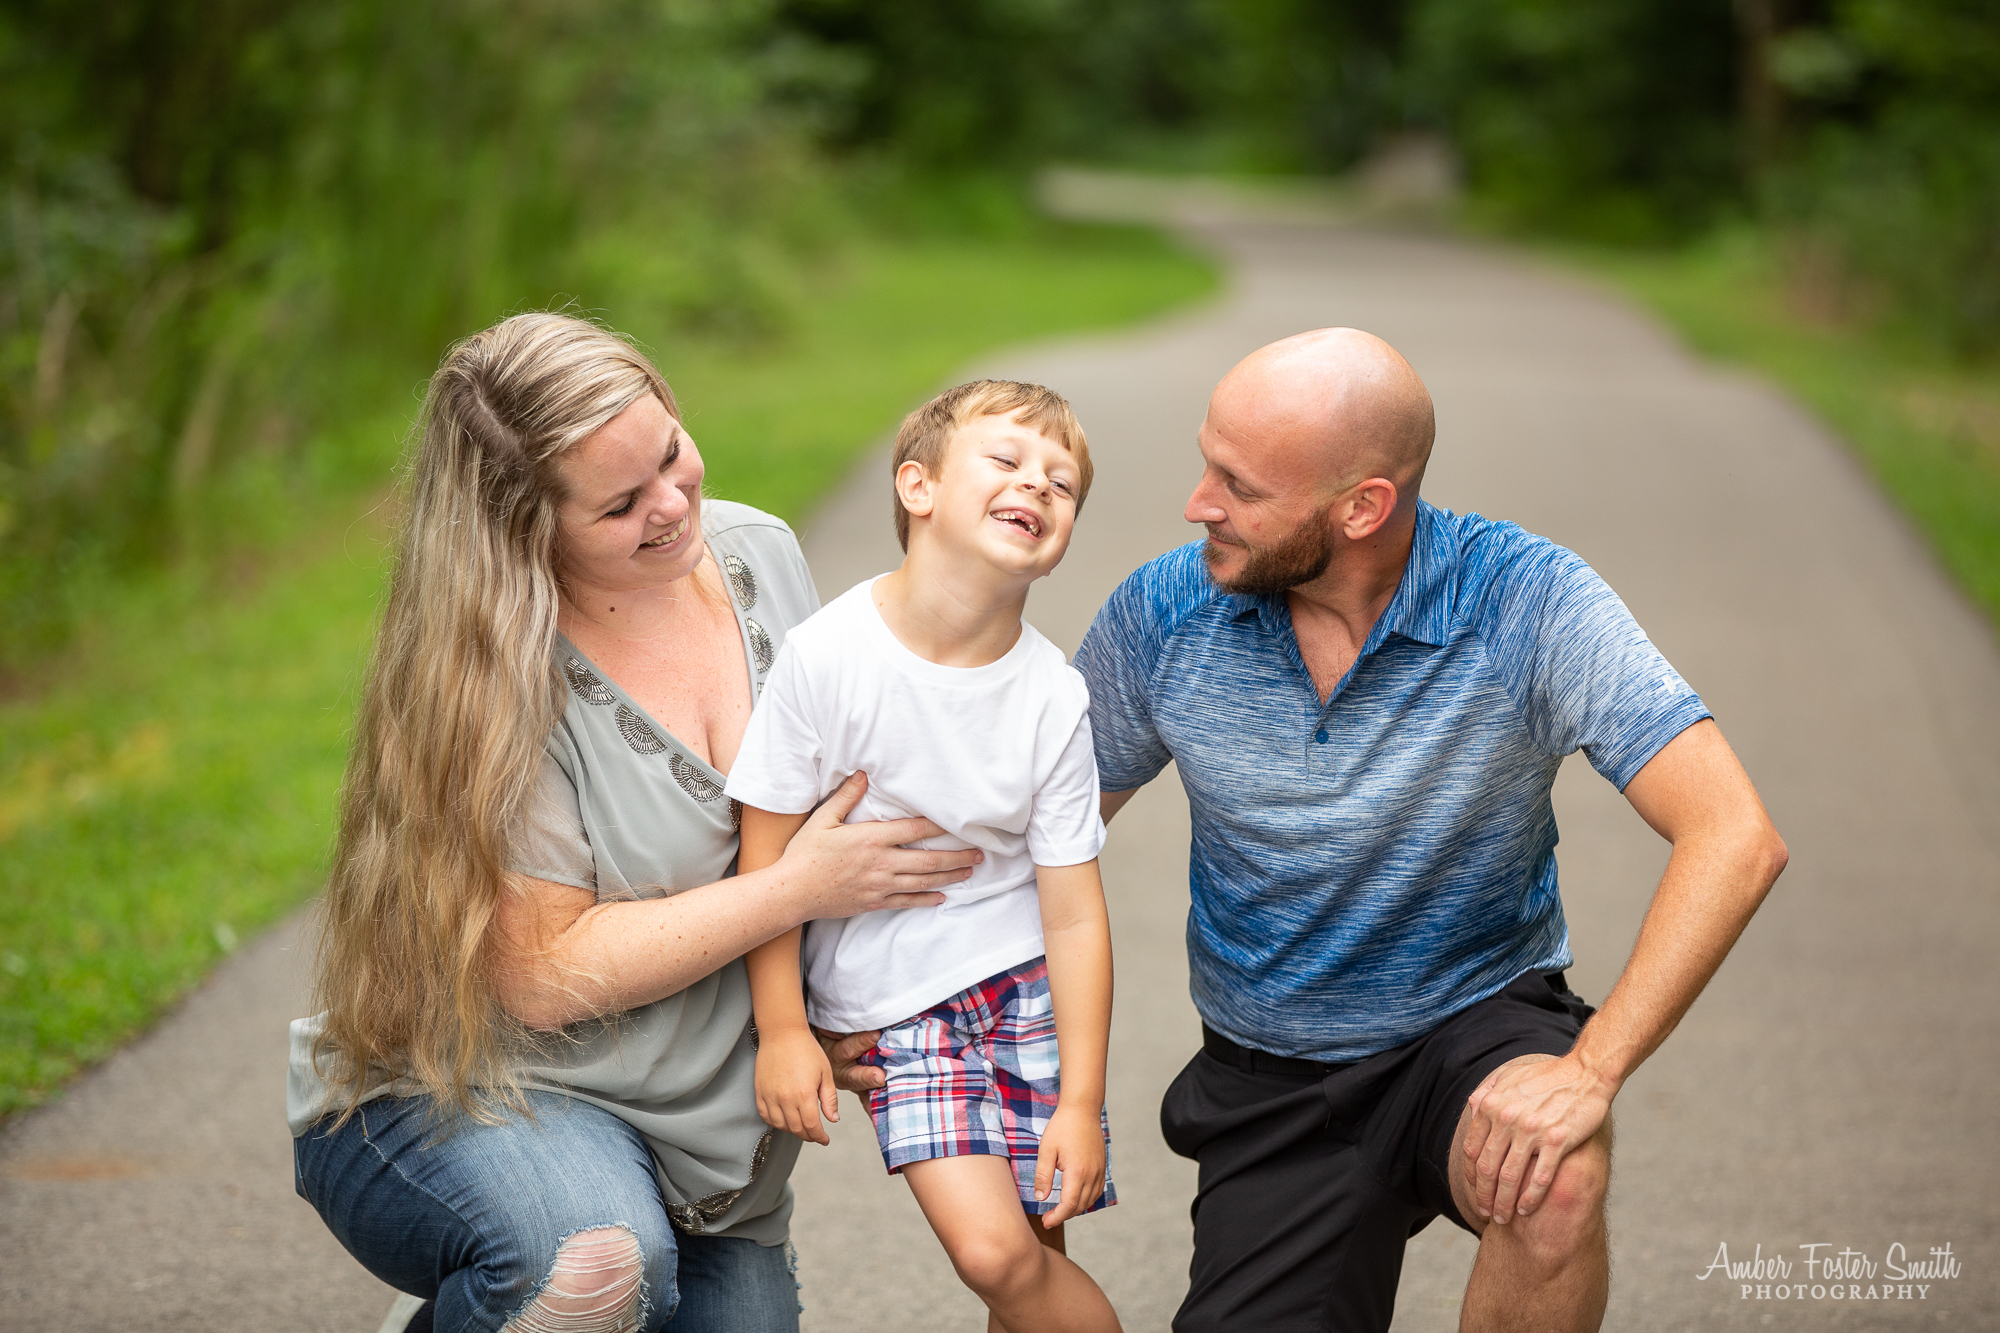 Young boy laughing while dad looks on and woman smiles